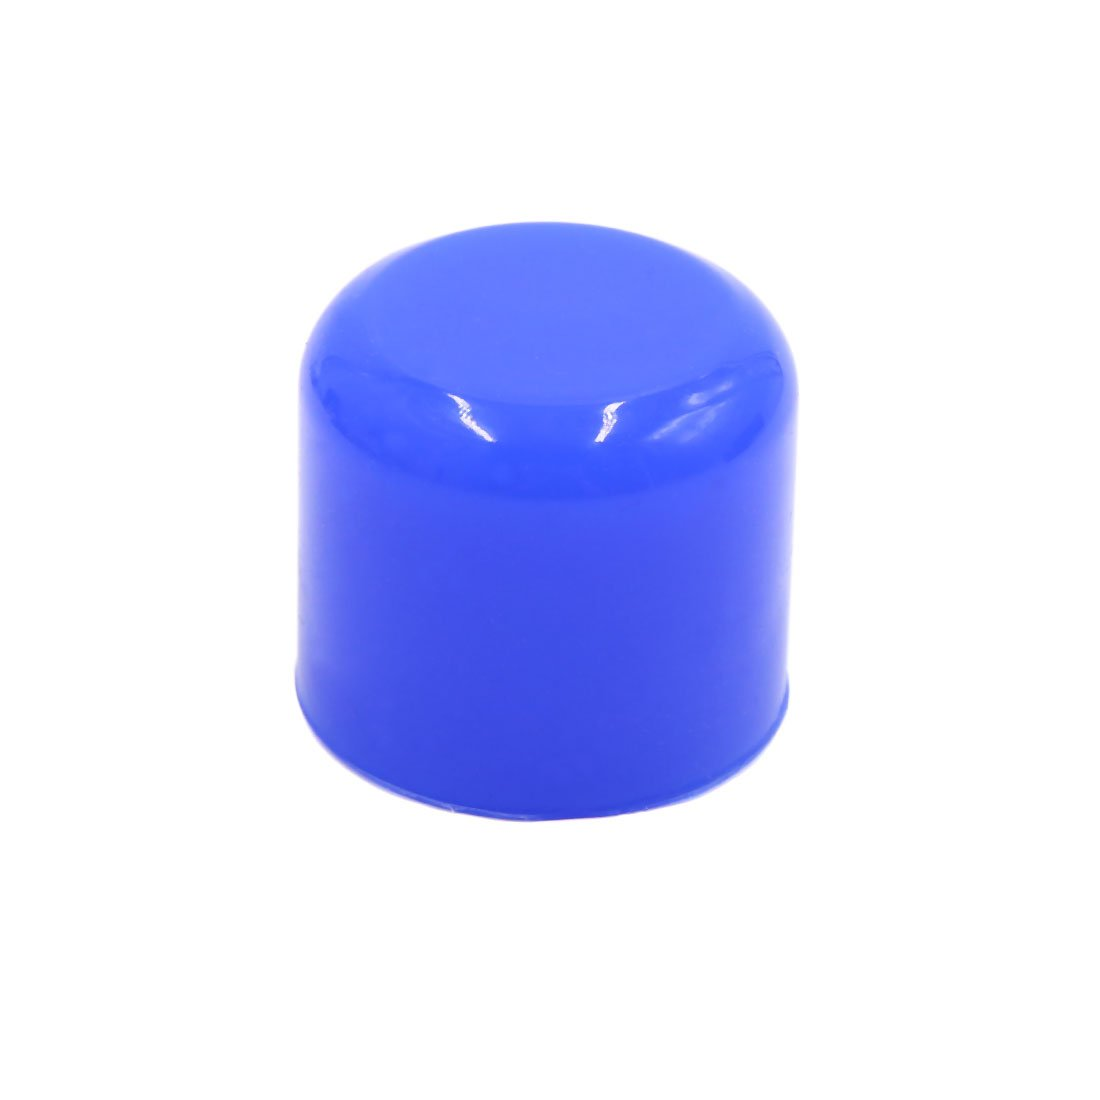 Uxcell a18011500ux0143 32mm 1.25' Silicone Blanking Cap Intake Vacuum Hose Tube End Bung Blue Unknown